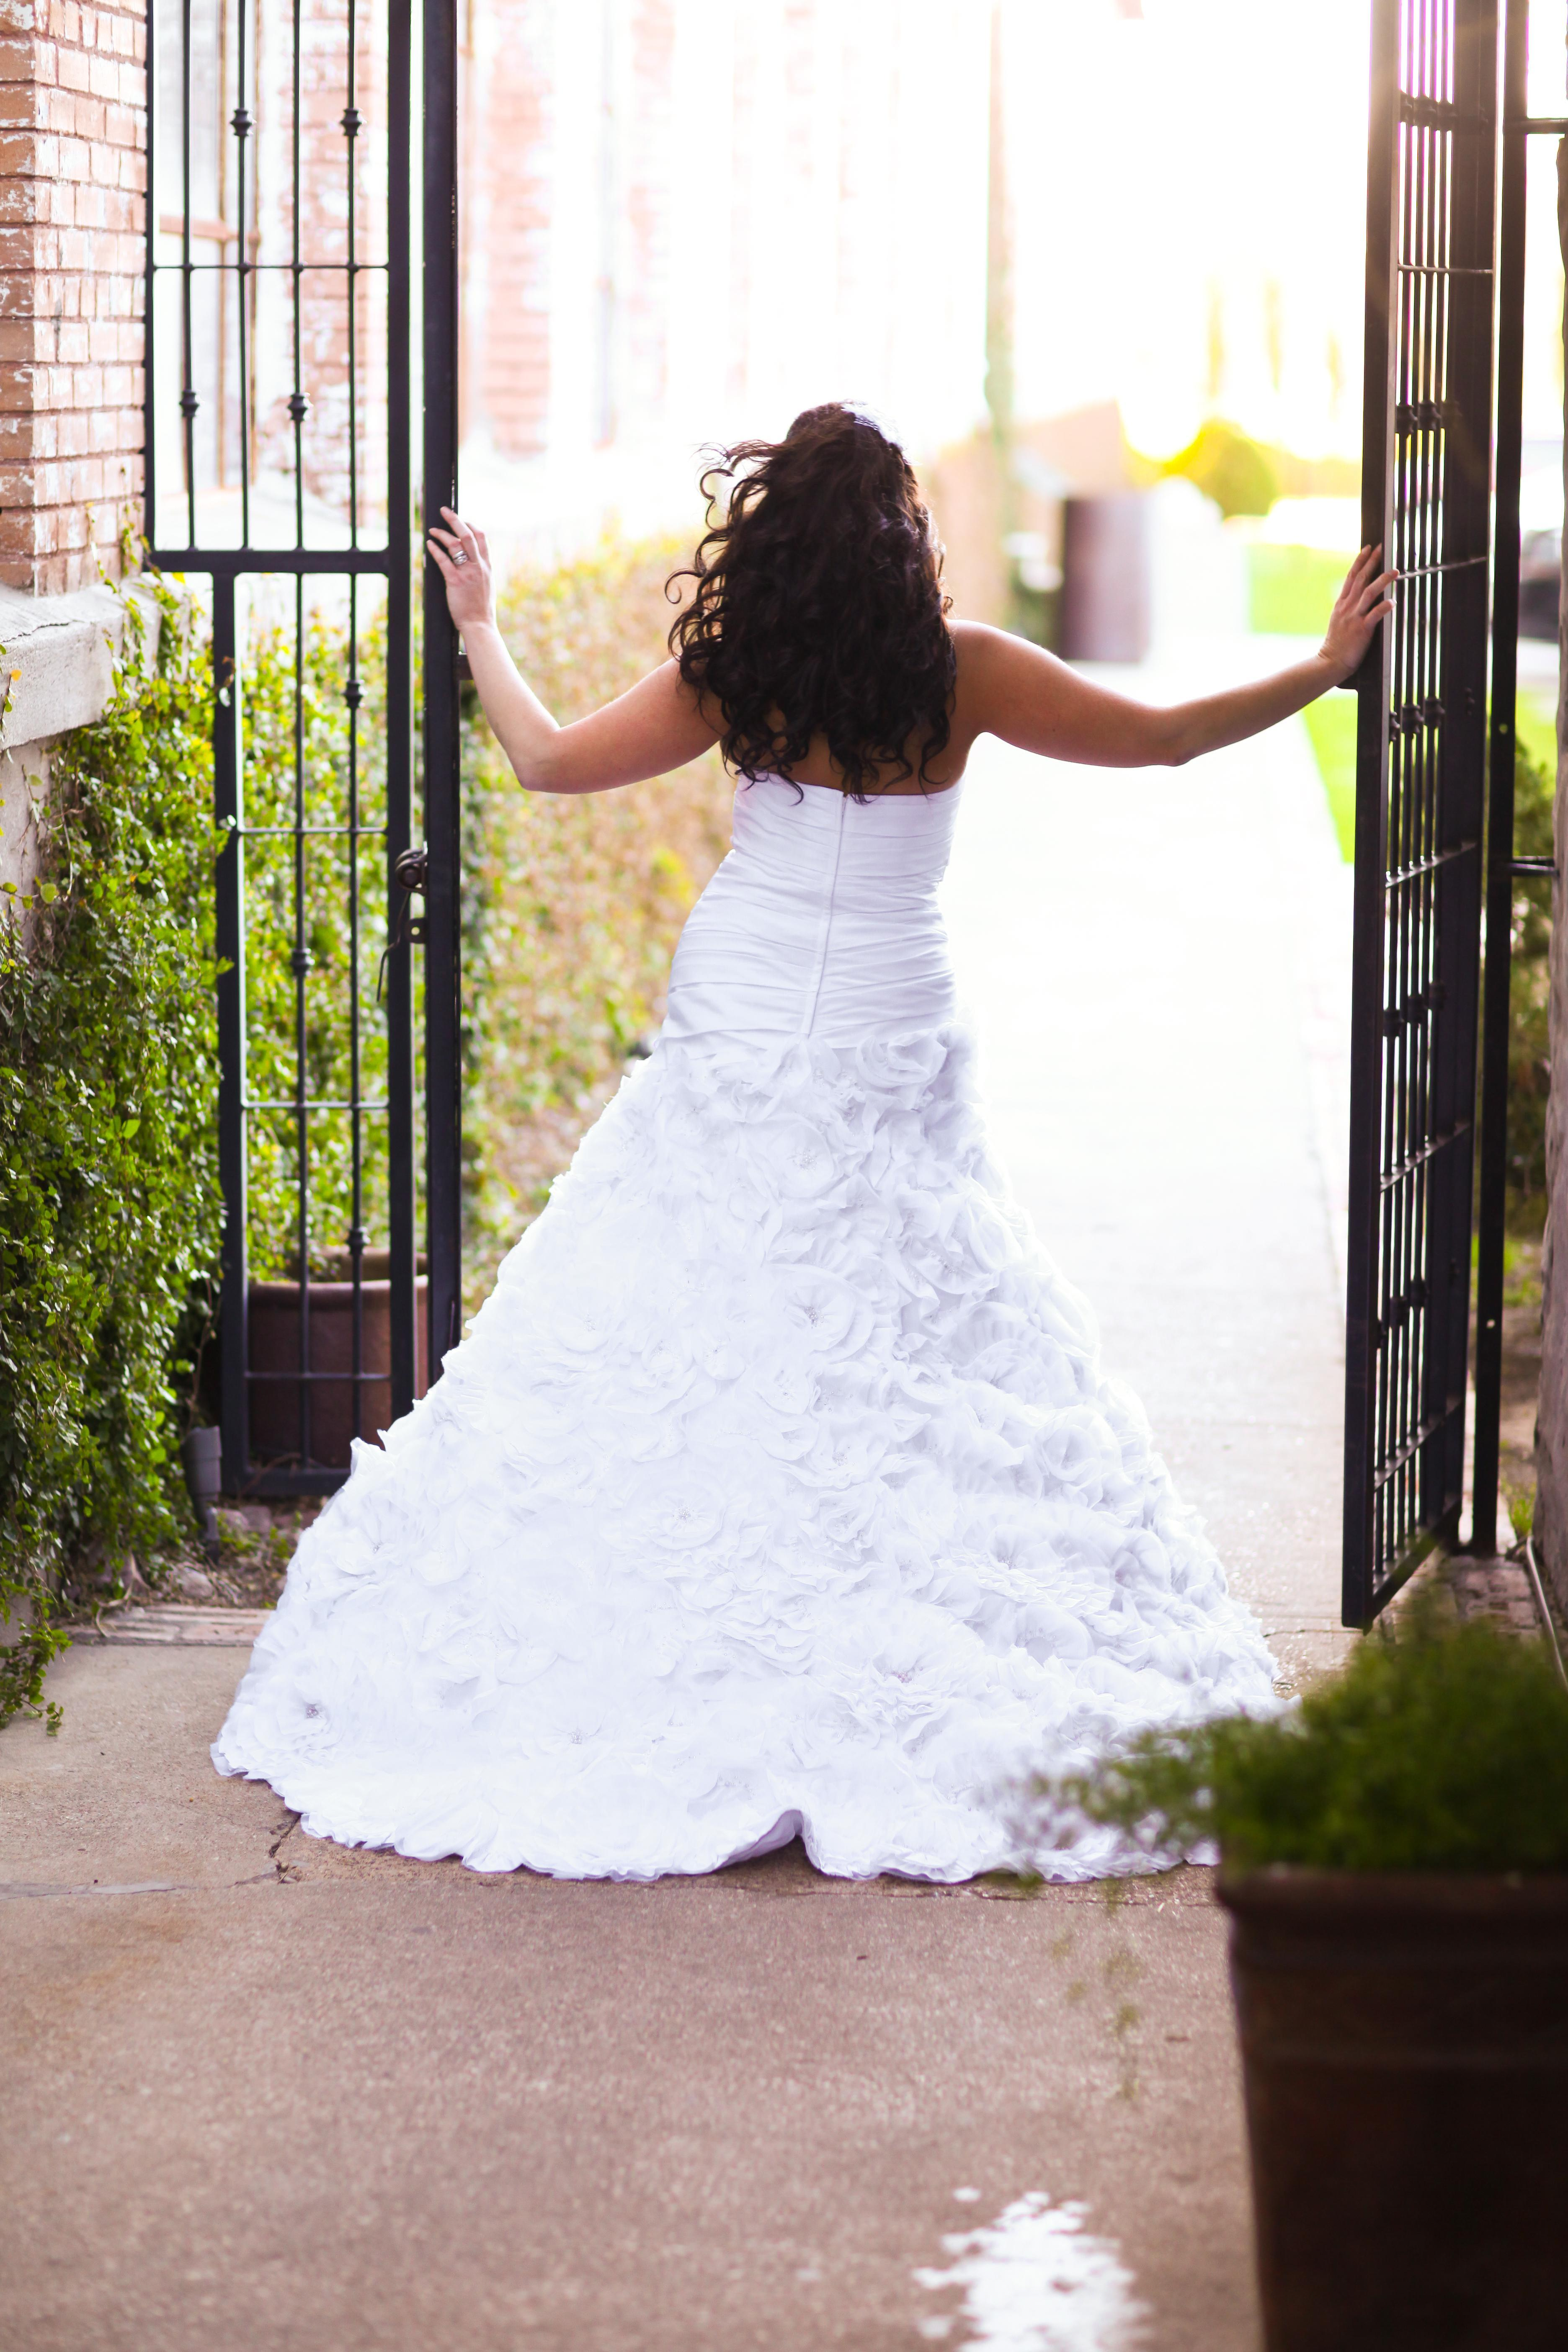 Wedding Dresses, Fashion, dress, Portraits, Bridal, Rock the dress, Mckinney cotton mill